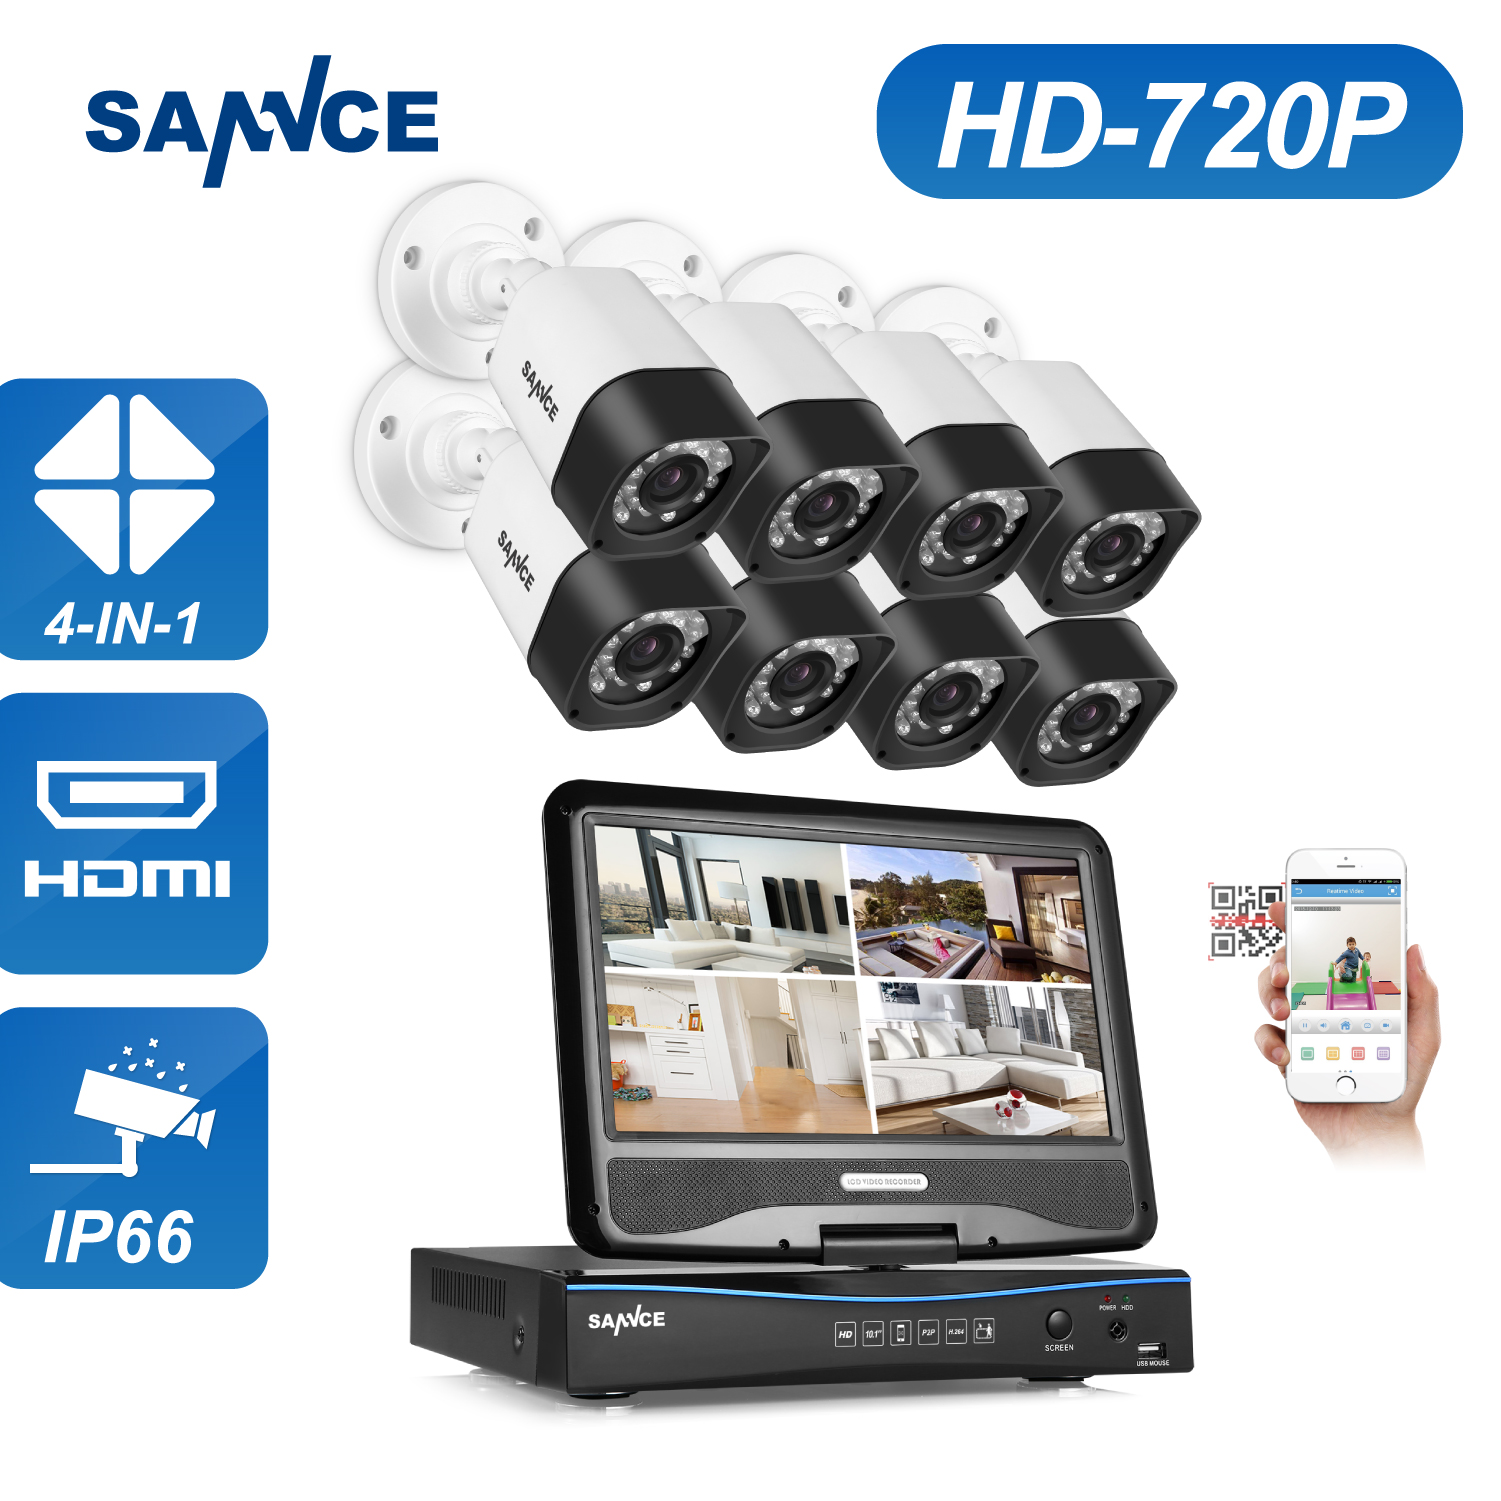 SANNCE 8CH Security Camera System 1080N DVR Reorder 8pcs HD 720P Outdoor Security CCTV Camera Surveillance System